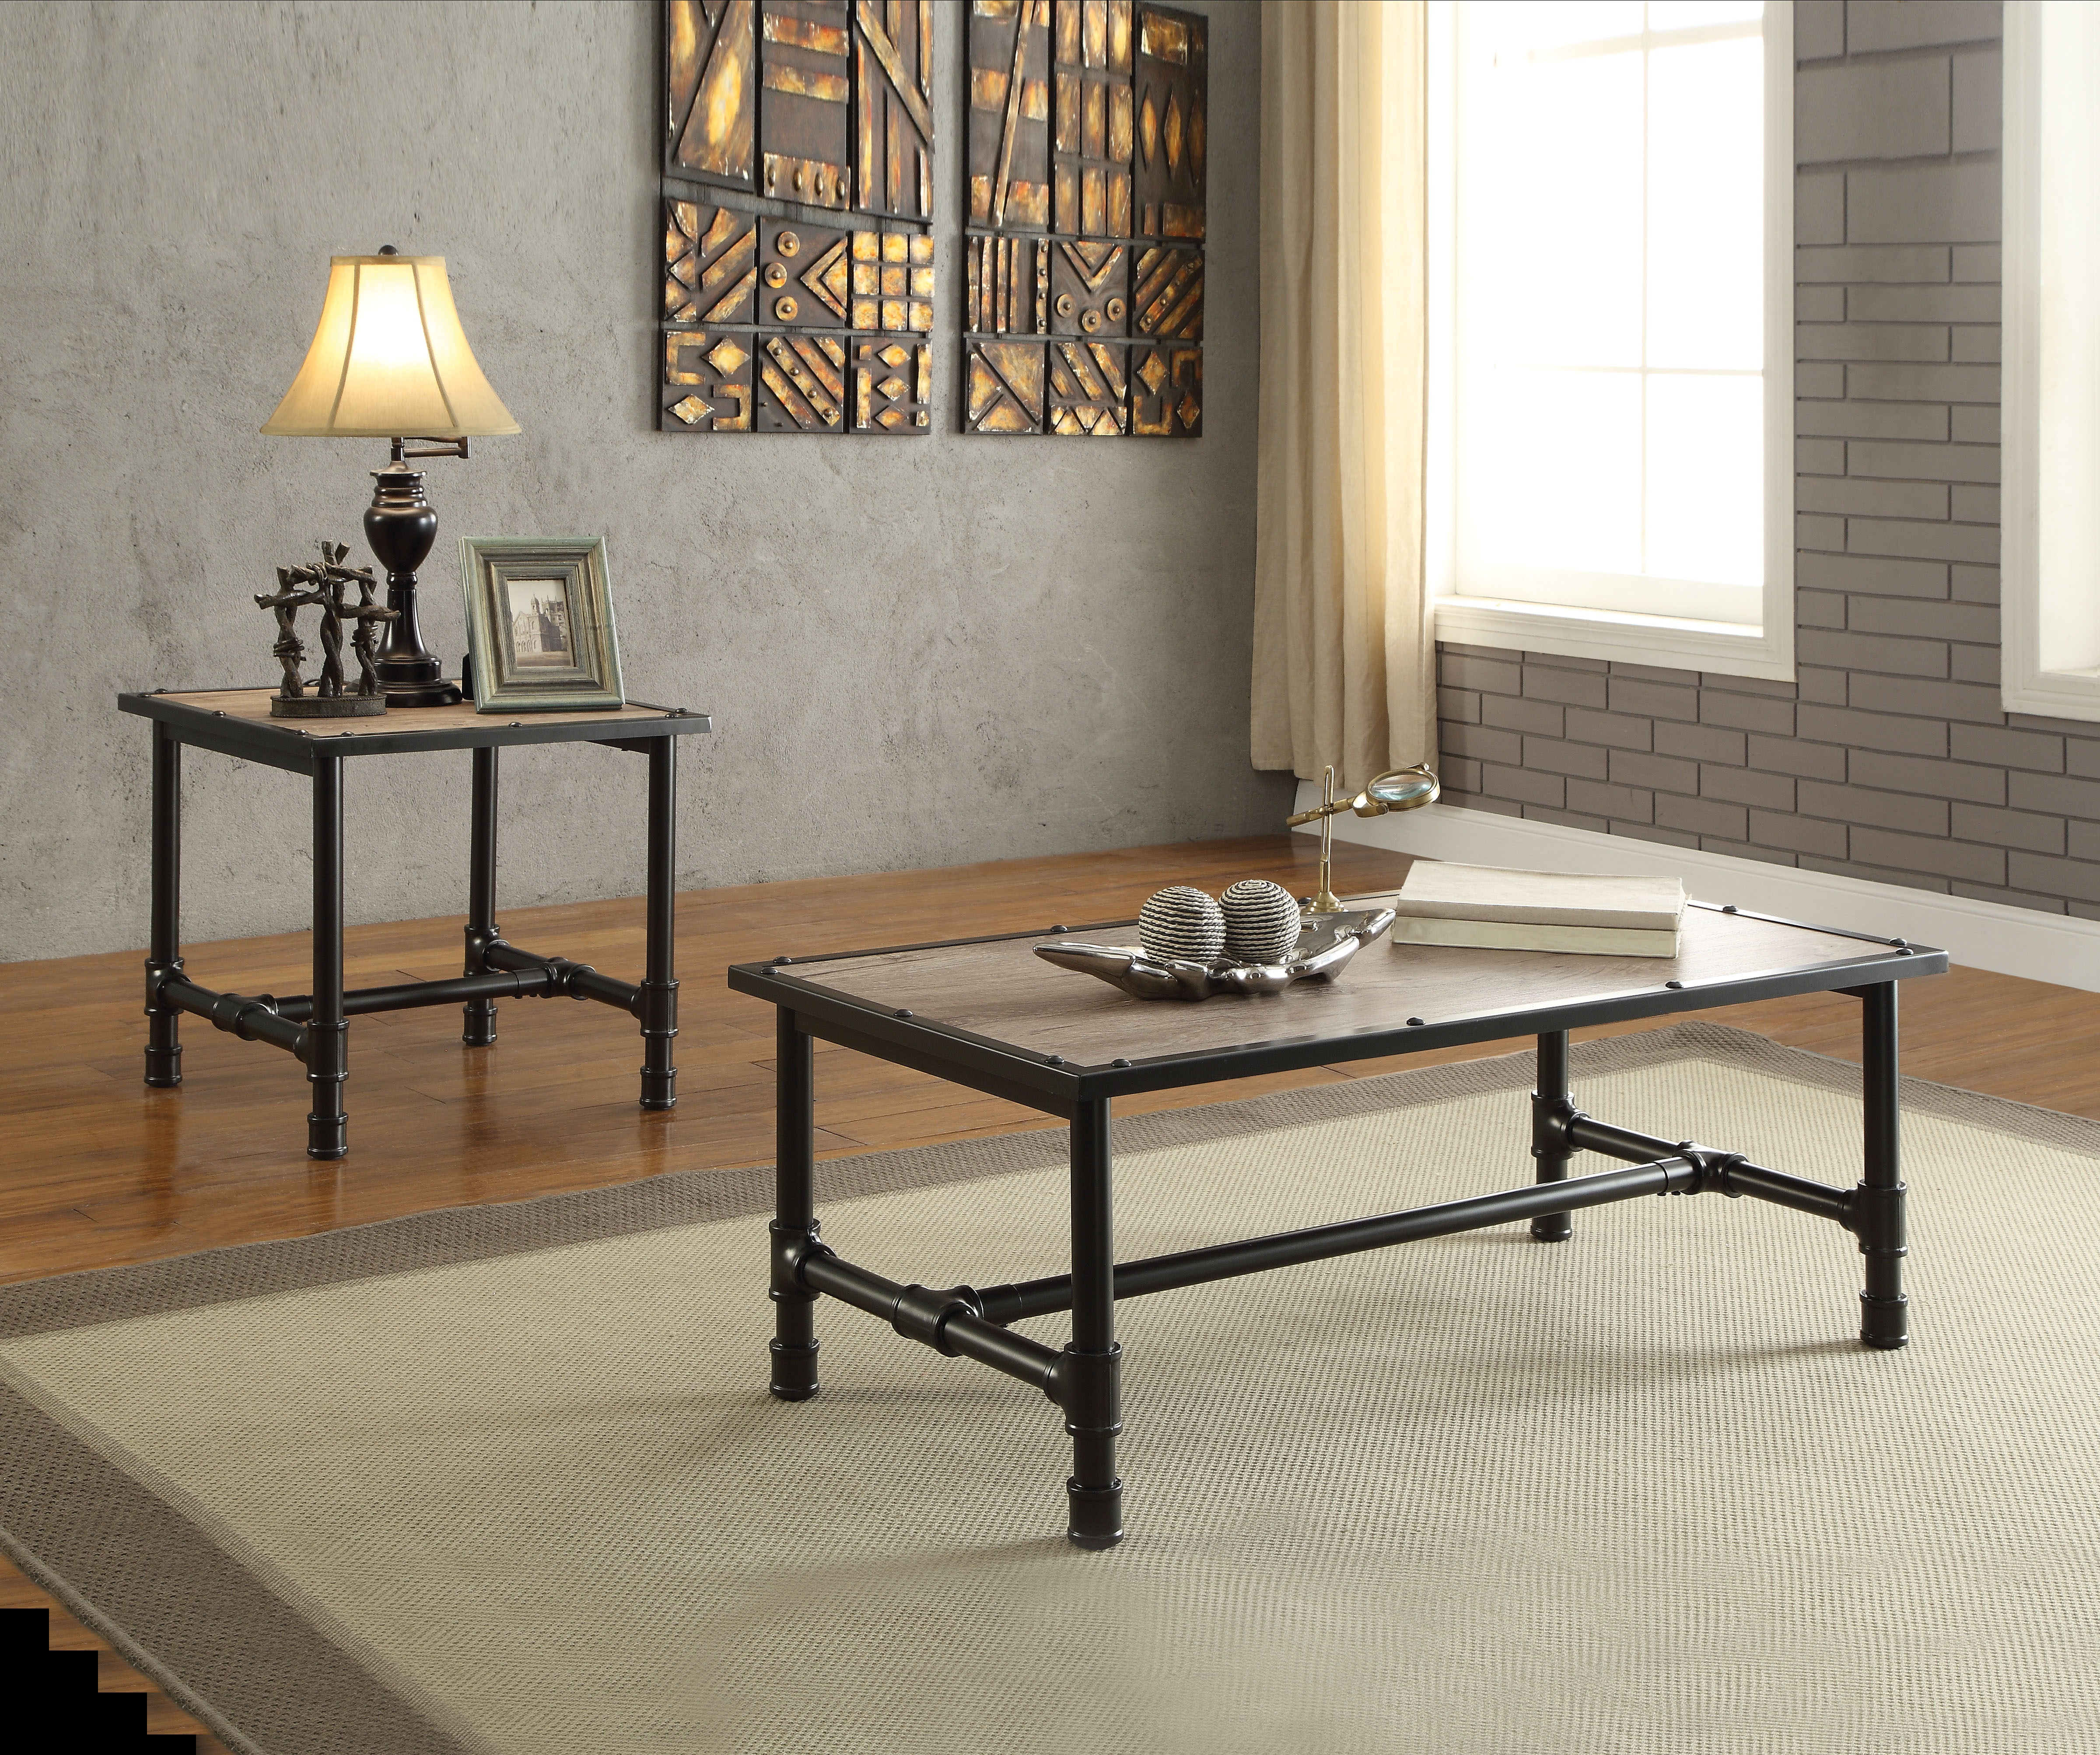 Coffee Table With Light Brown Wooden Table Top